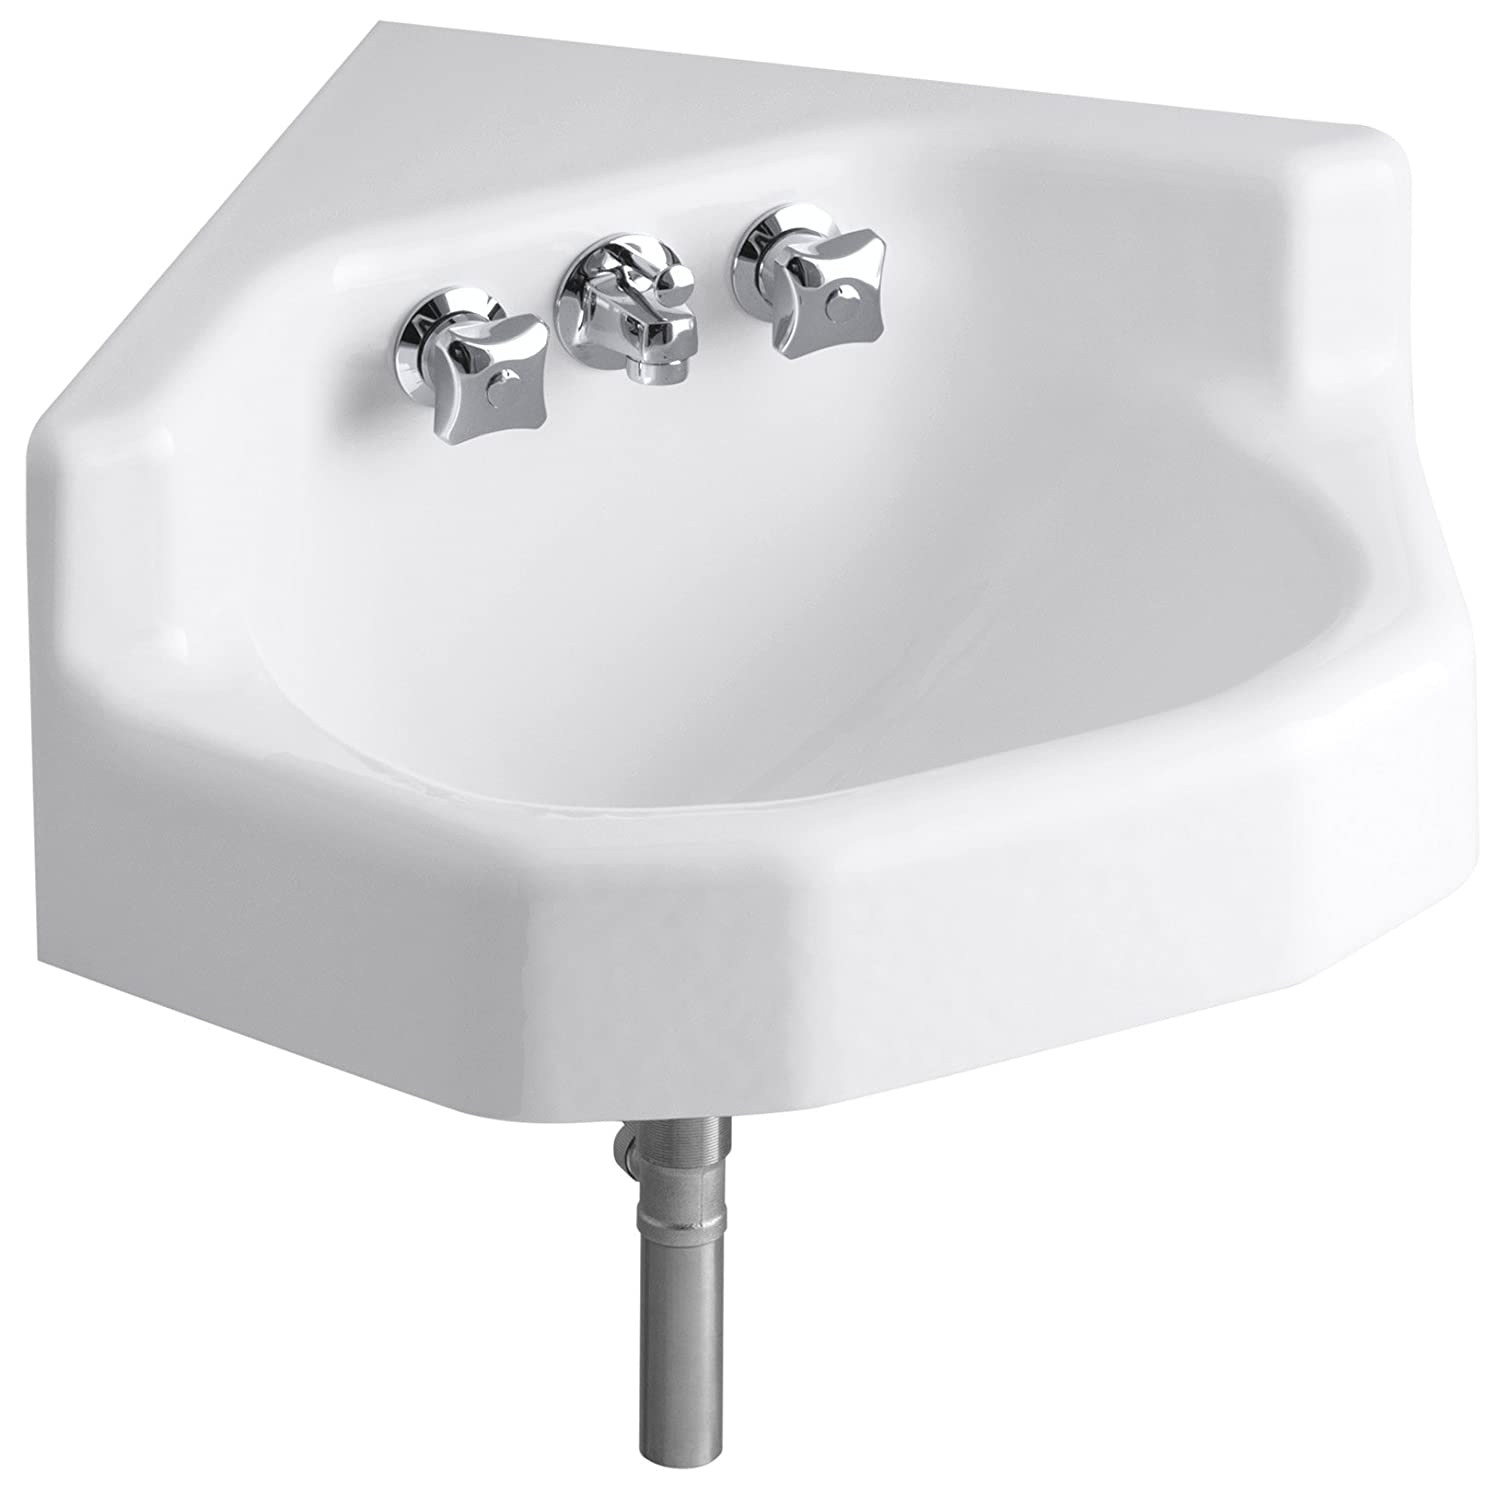 Small wall mounted bathroom sinks - Kohler K 2766 0 Marston Wall Mount Corner Bathroom Sink White Corner Bathroom Sinks Amazon Com